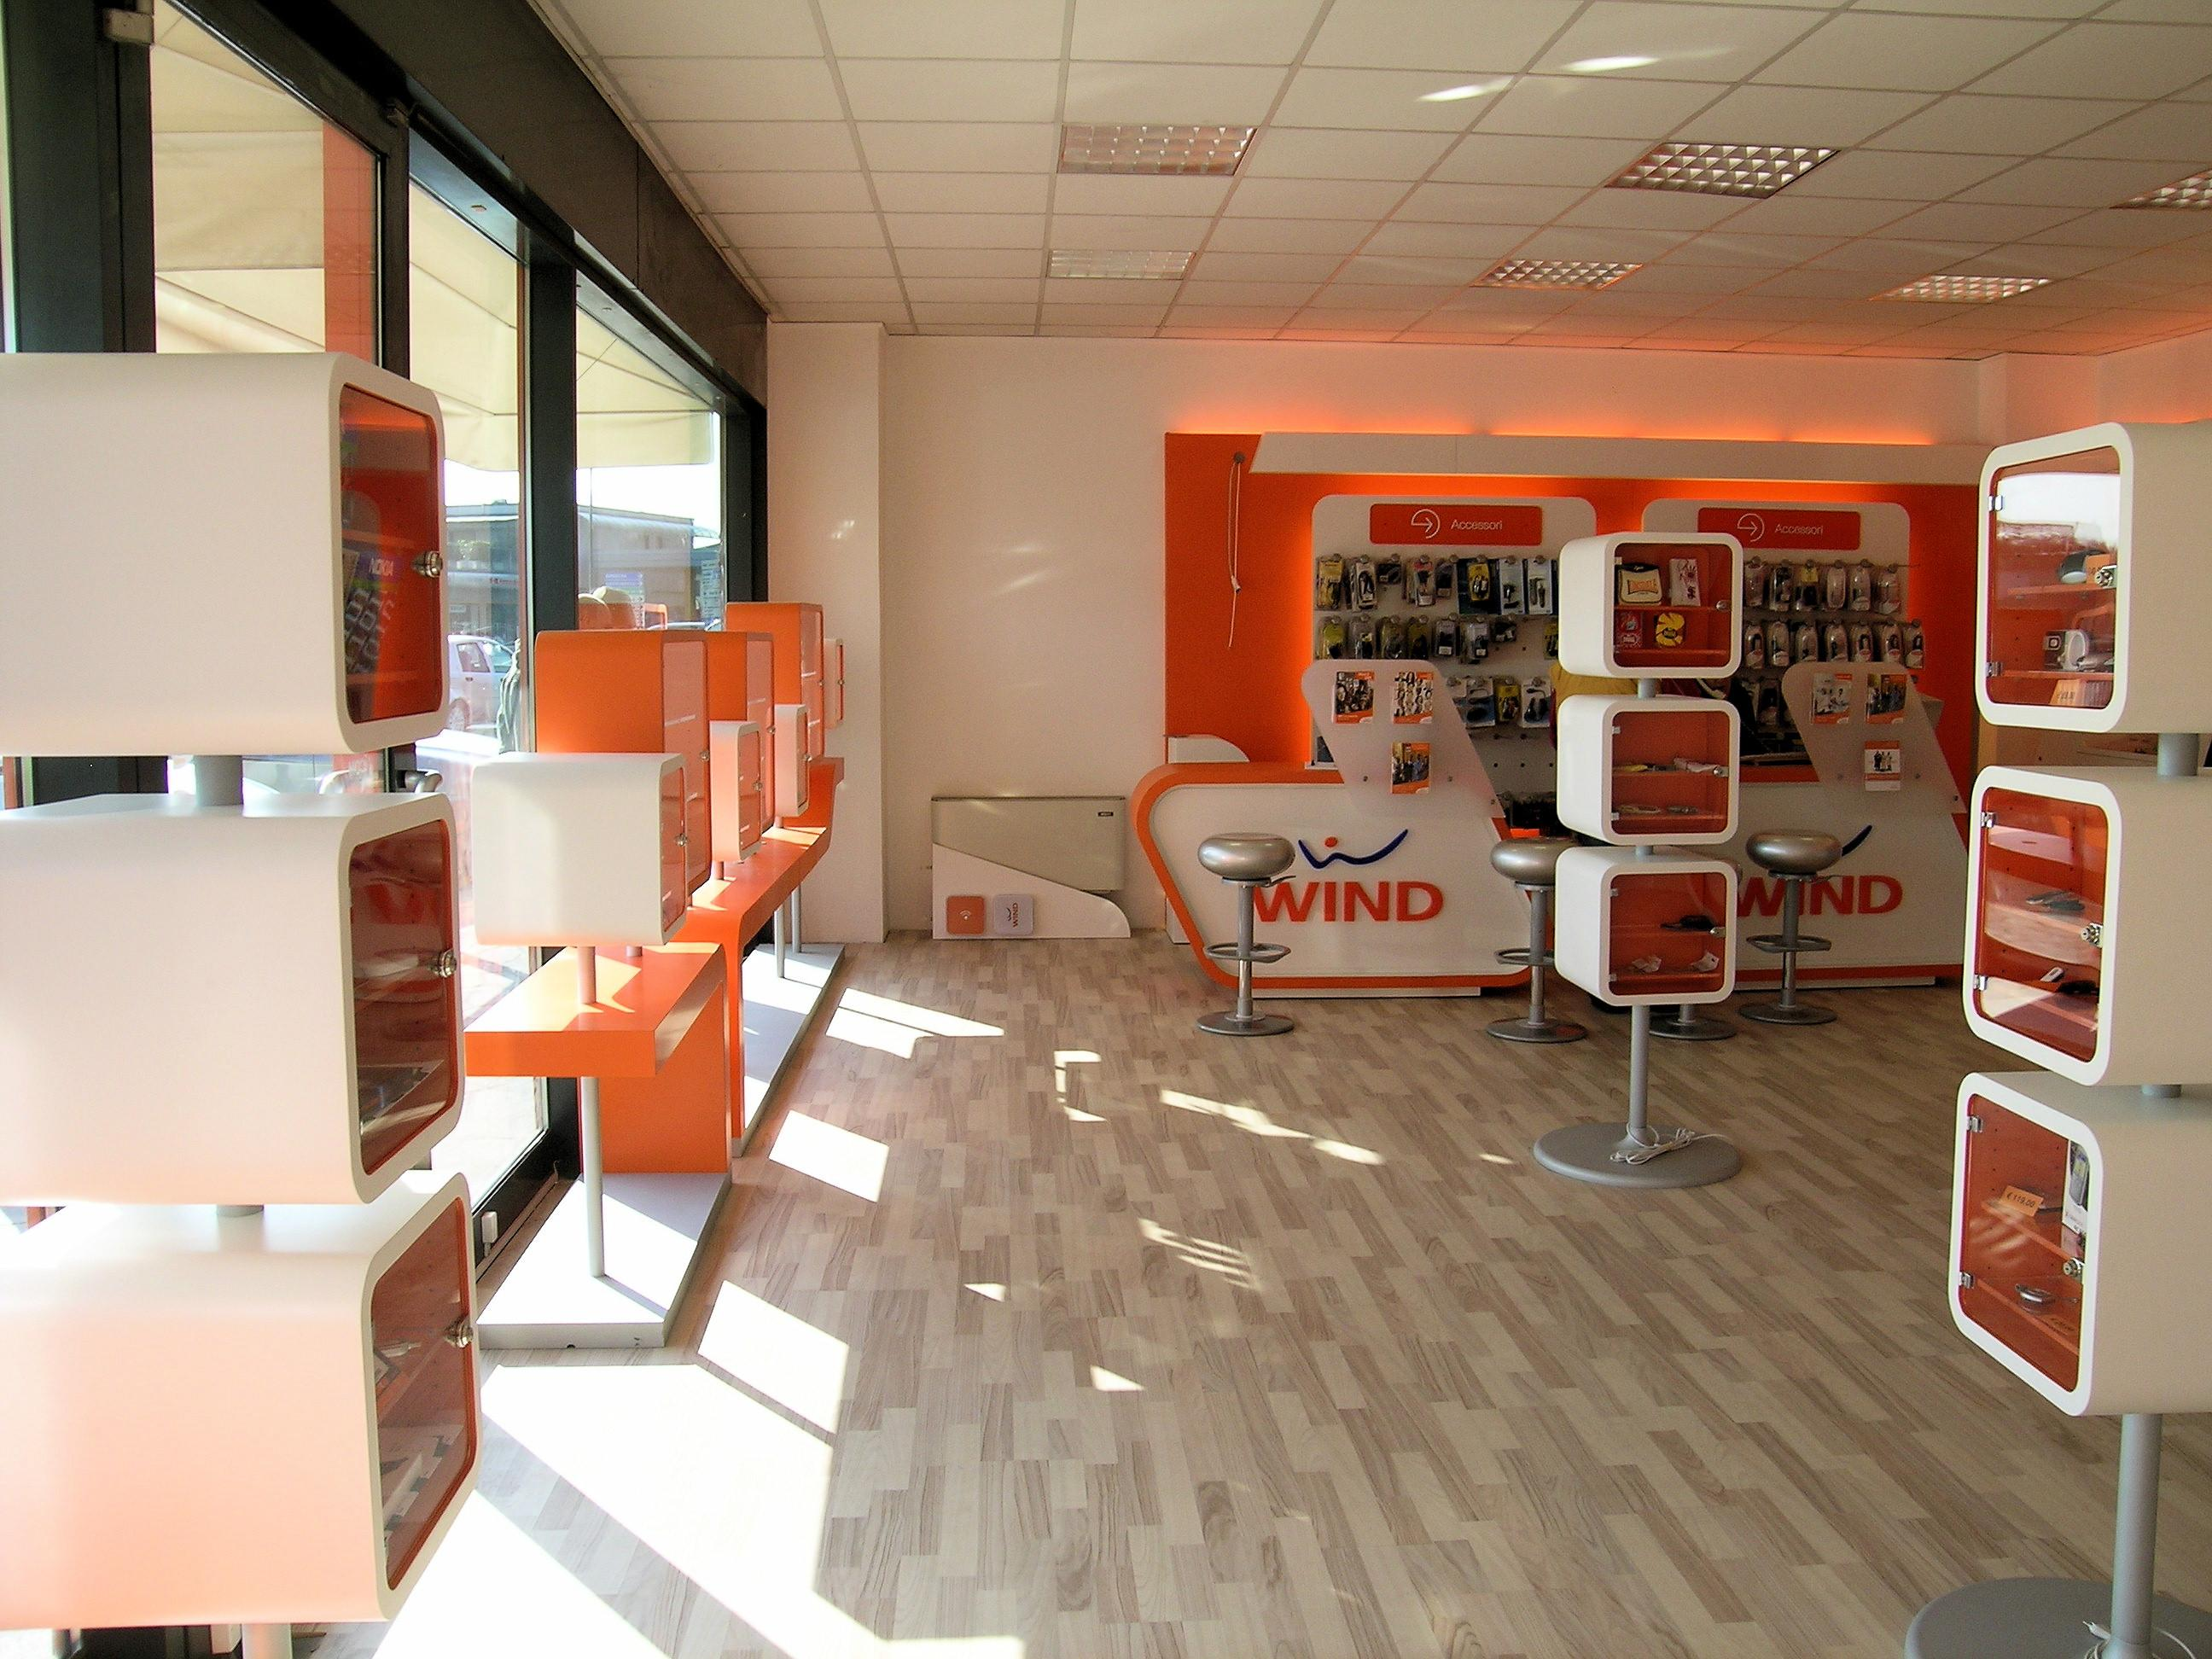 New Ing Direct Italy Filiale Milano Grossi